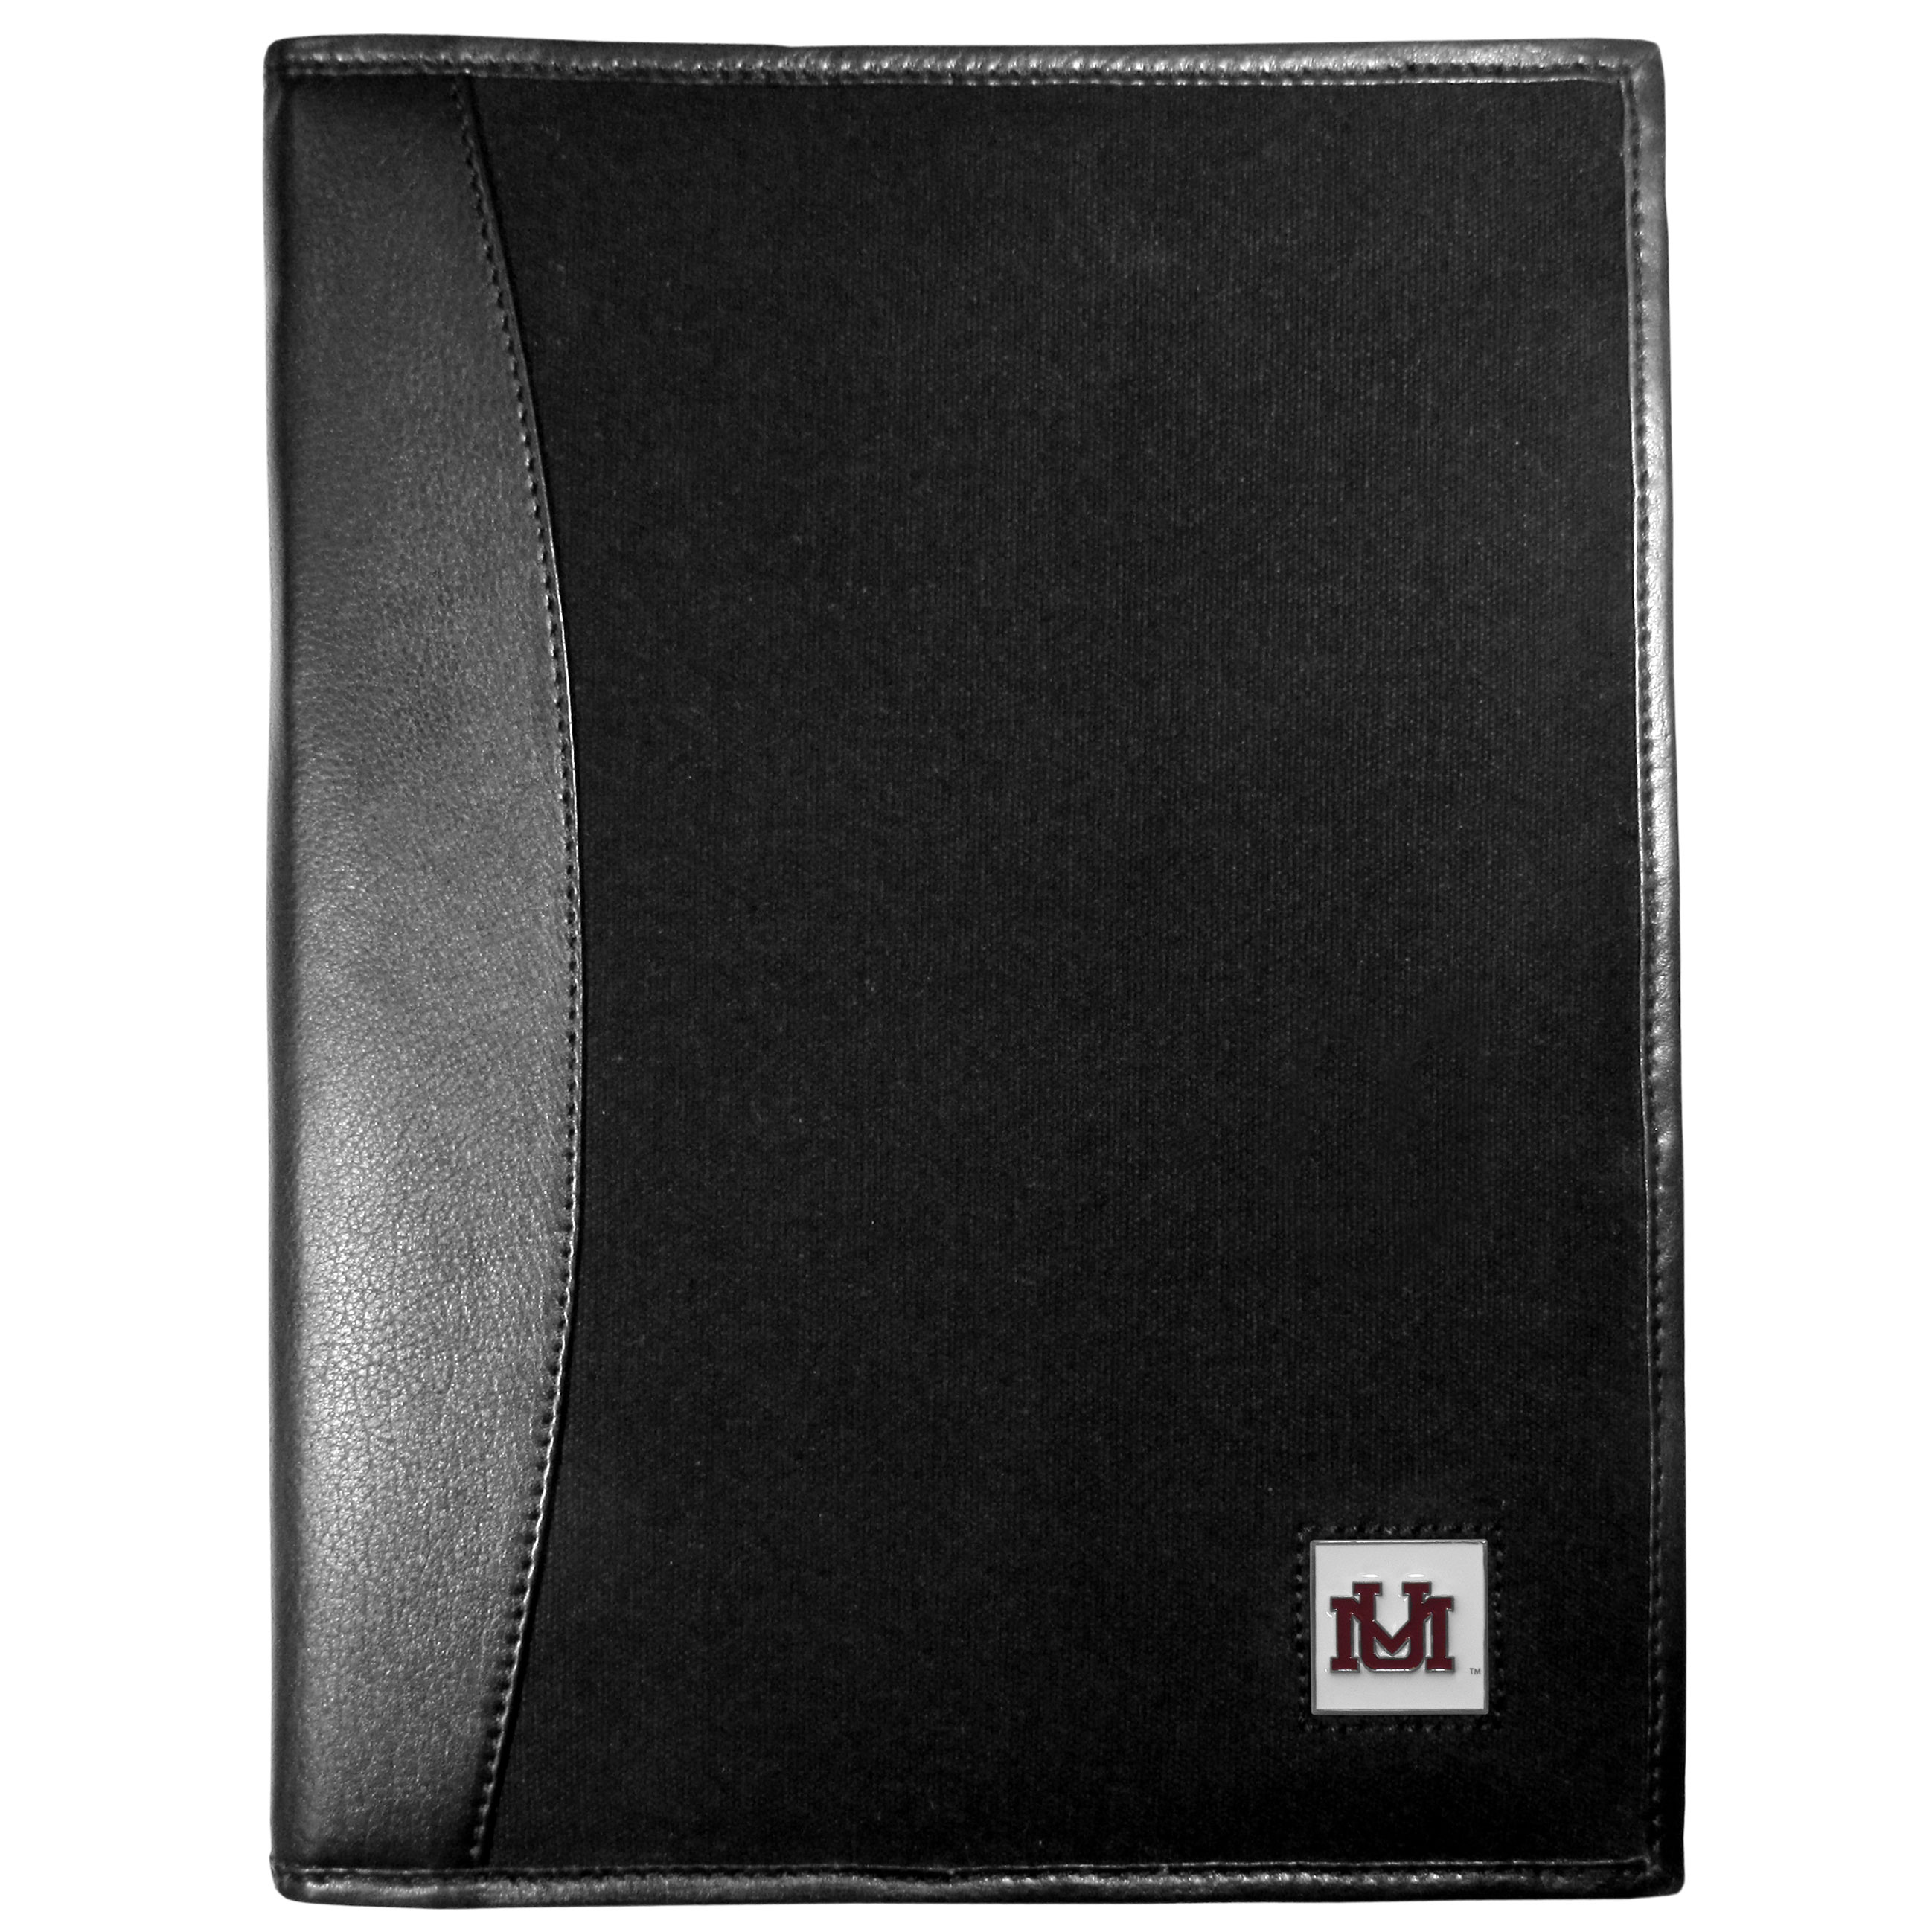 Montana Grizzlies Leather and Canvas Padfolio - Our leather and canvas padfolio perfectly blends form and function. The attractive portfolio is bound in fine grain leather with an attractive canvas finish and the interior is a soft nylon. This high quality business accessory also features a fully cast metal Montana Grizzlies emblem that is subtly set in the corner of the organizer. It is packed with features like 6 card slots for badges, business cards, hotel keys or credit cards and ID with a large pocket for loose papers and a writing tablet slot making it a must-have for the professional on the go.